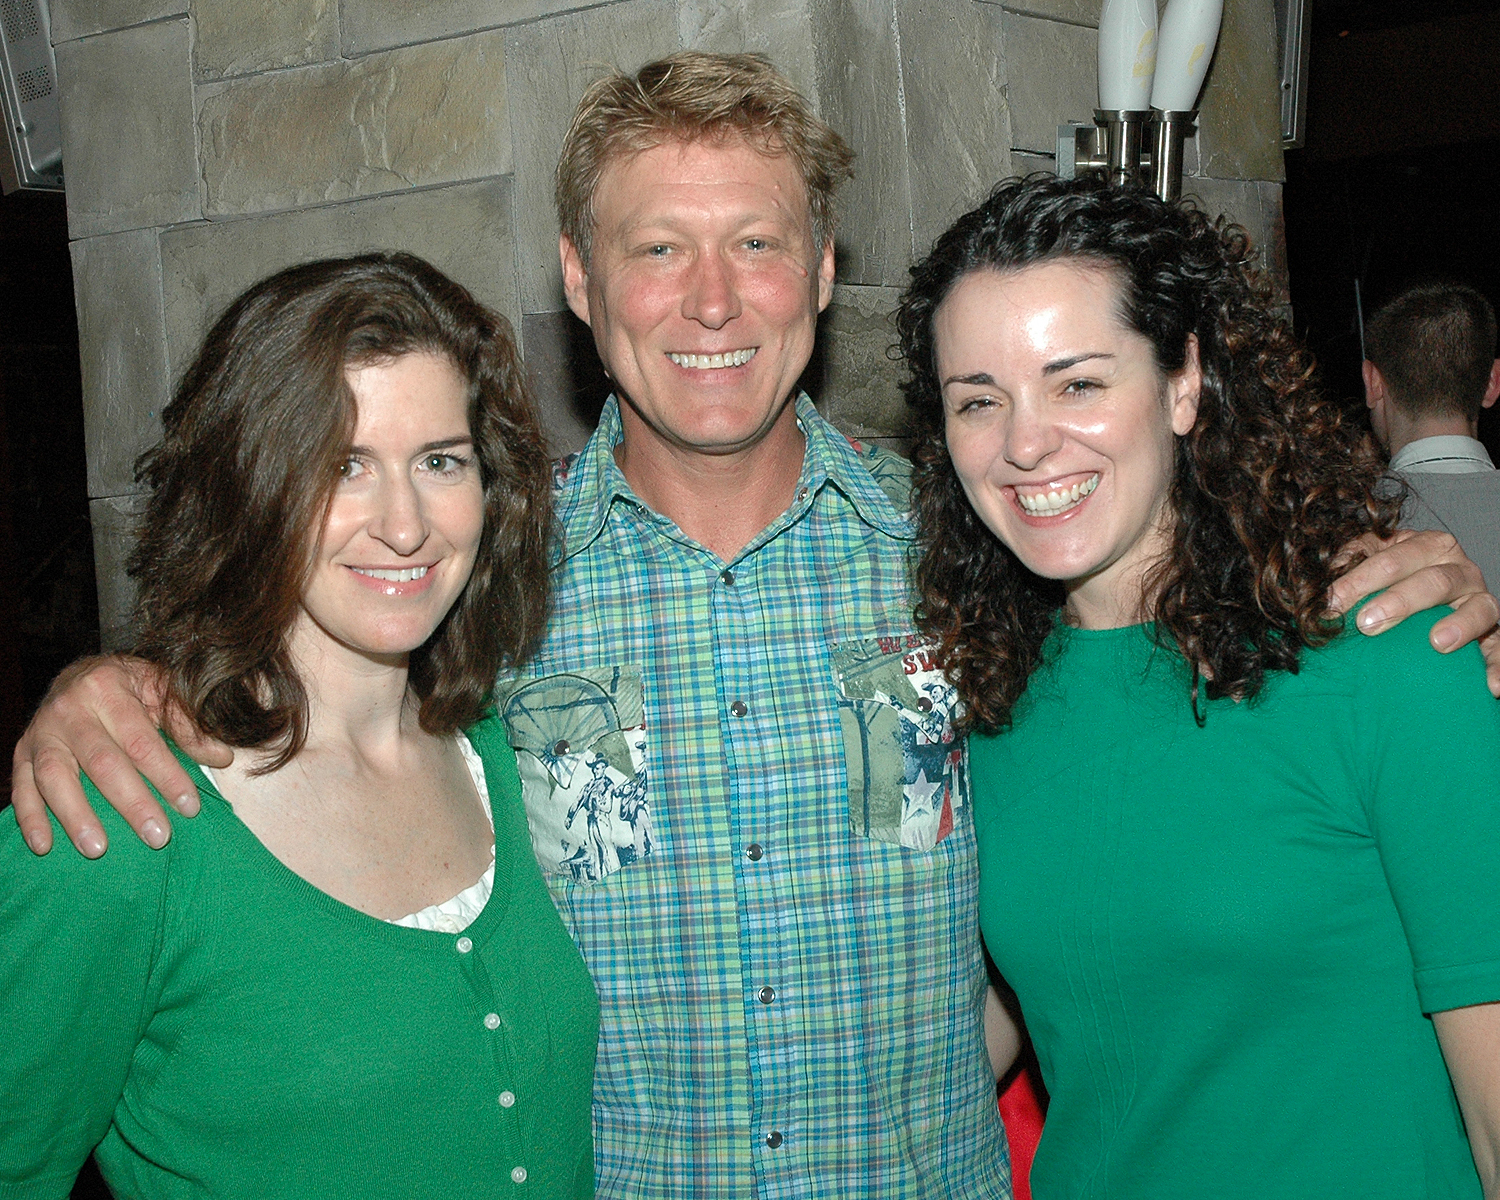 Jessica Greer Morris, Robert LaFosse and Anne West-Church